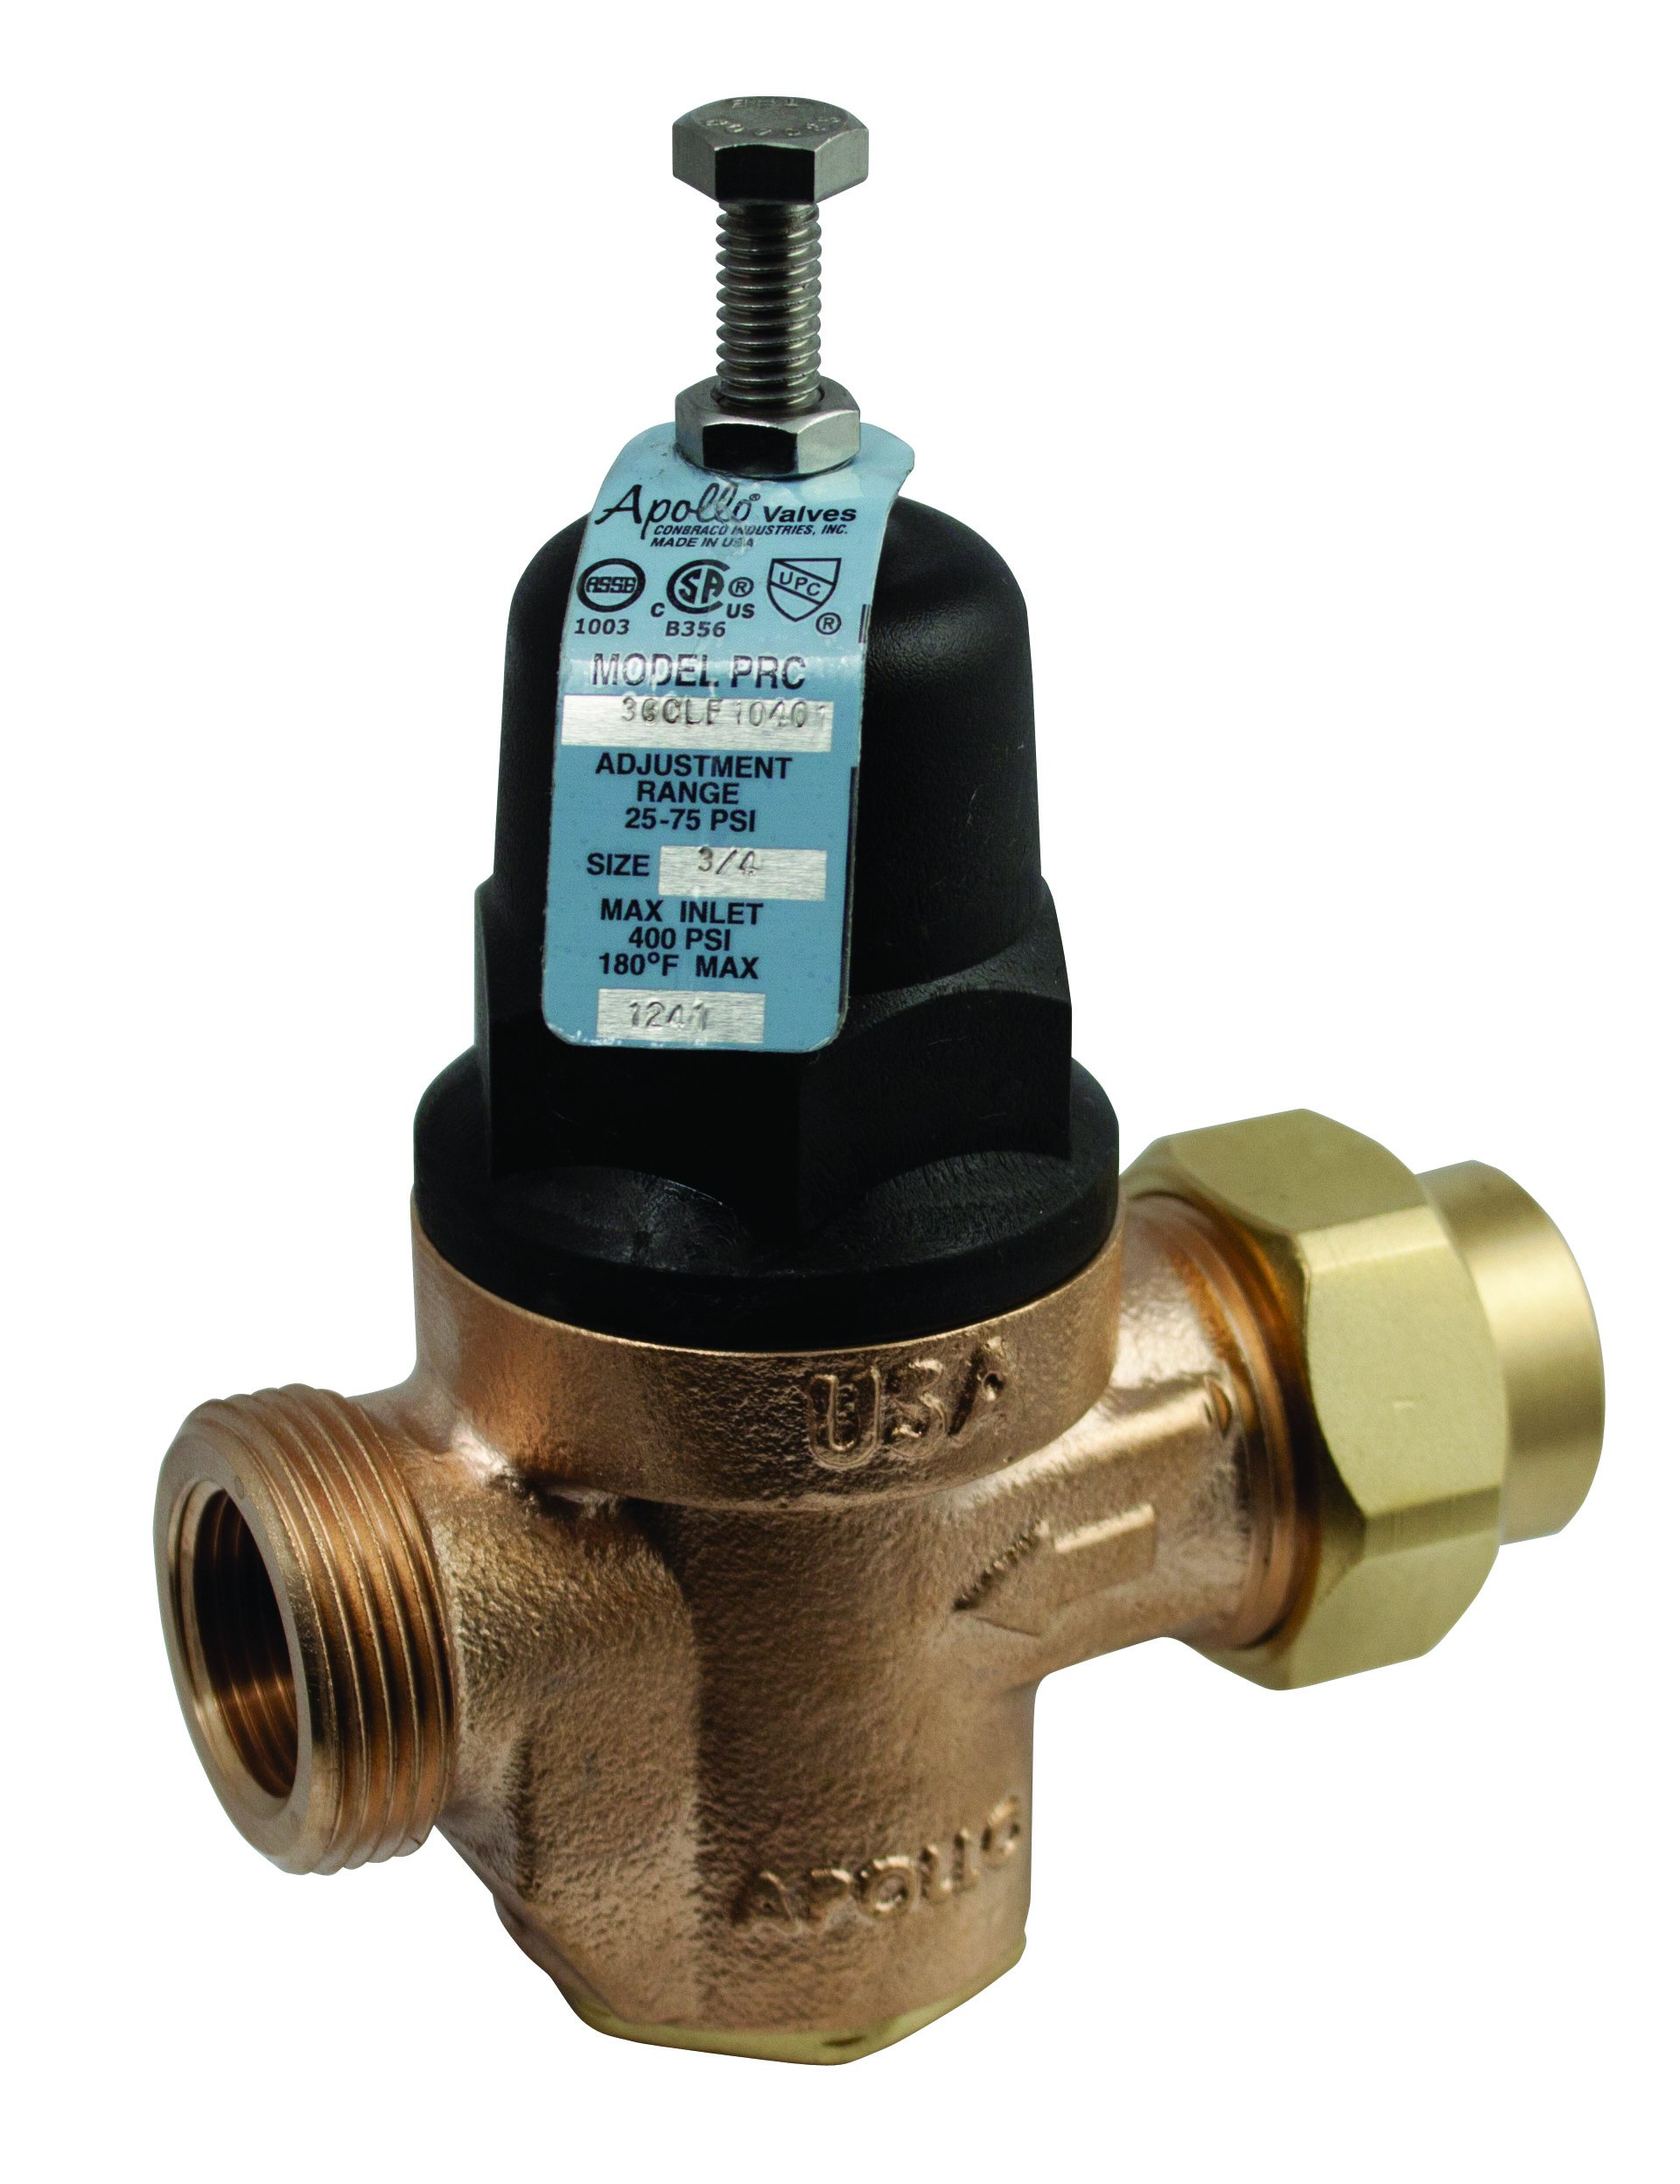 Apollo Valves - 3/8'' Apollo 36CLF-104-01 Pressure Reducing Valve, FPT, 50 - 400 PSI, Bronze Body by Apollo